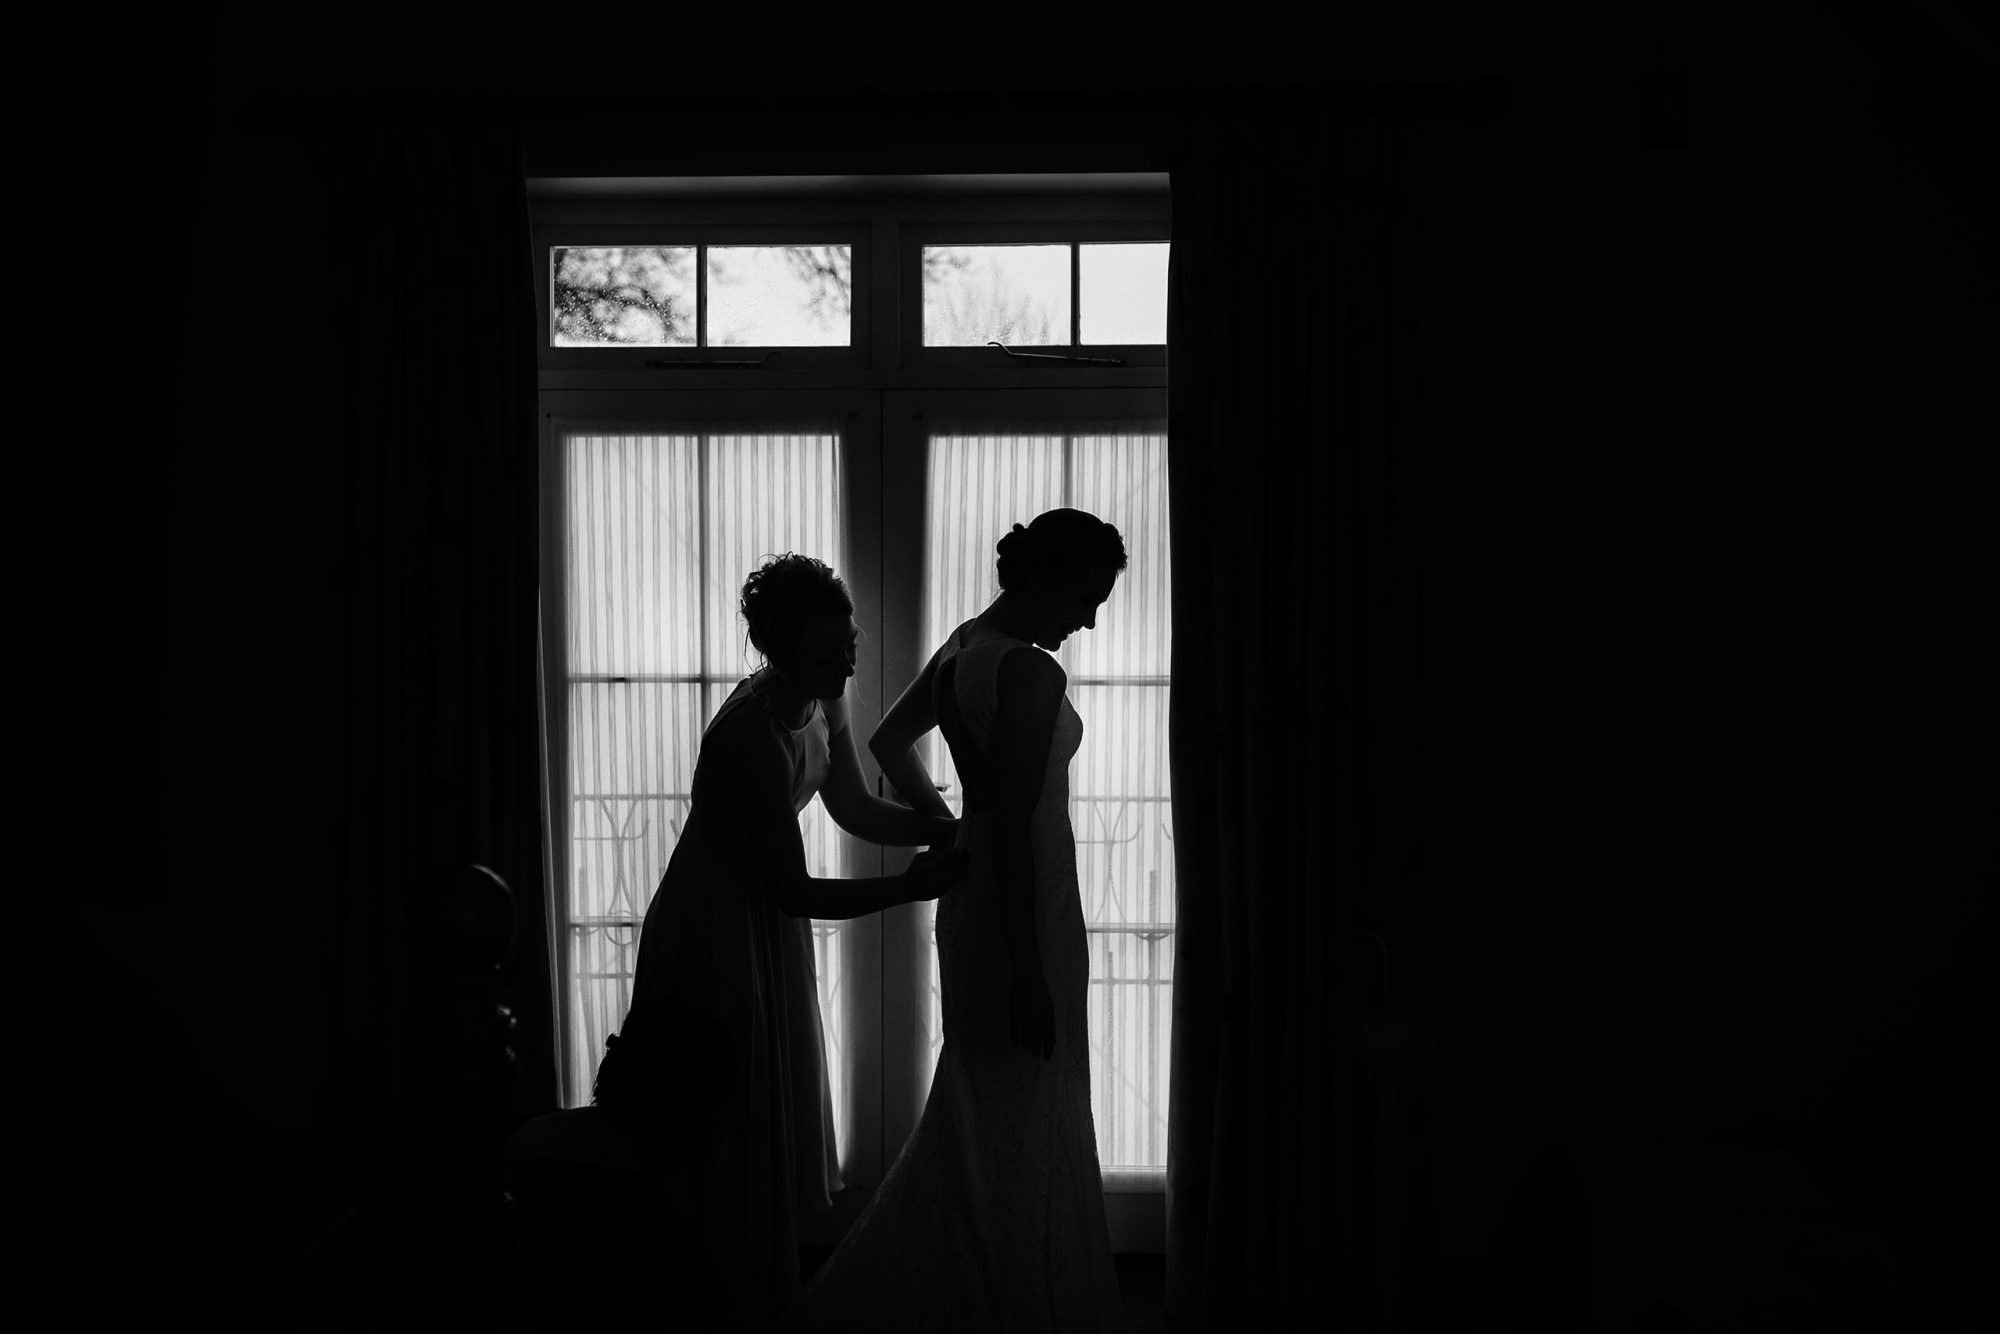 wedding photographer in shropshire captures a bride and her sister getting ready